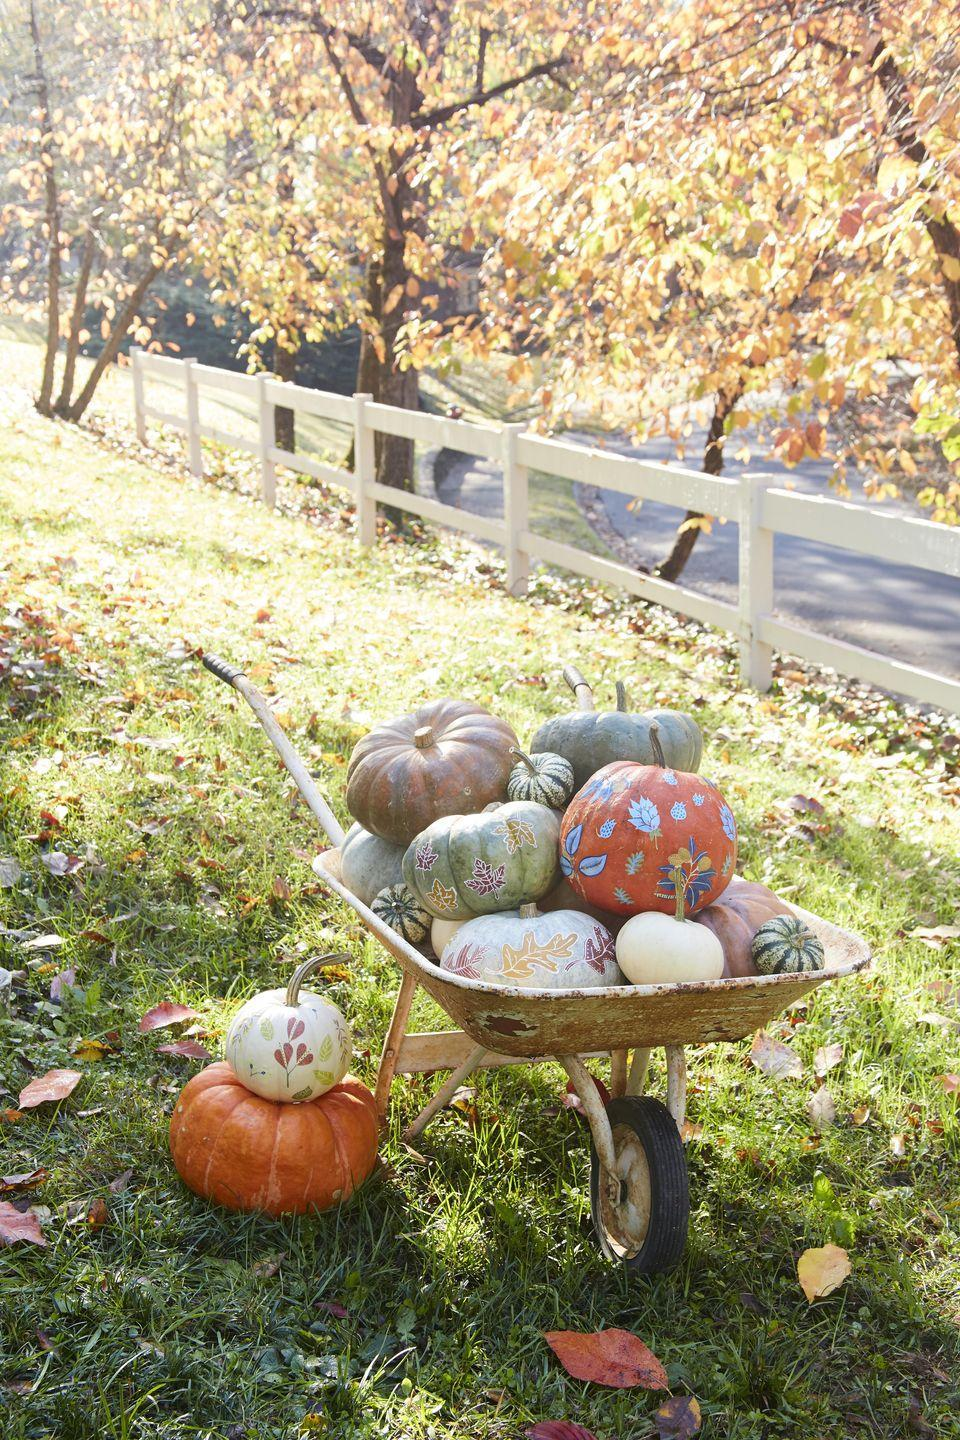 <p>Great trick-treaters and well-wishers with a wheelbarrow stuffed full of painted on and decoupaged leaf motif pumpkins. Bulk up the display with no extra work by including loads of varying size and color pumpkins</p><p><strong>To make: </strong></p><p><strong>Decoupage Leaves:</strong> Cut out leaves and flowers from new or vintage wallpaper or wrapping paper. Decoupage to pumpkins using Mod Podge.</p><p><strong>Outlined Painted Leaves:</strong> Use a leaf shaped stencil to paint fall colored leaves on green, blue or white pumpkins. Once dry use a white paint pen to outline the leaves, add veining, and decorative details.</p>